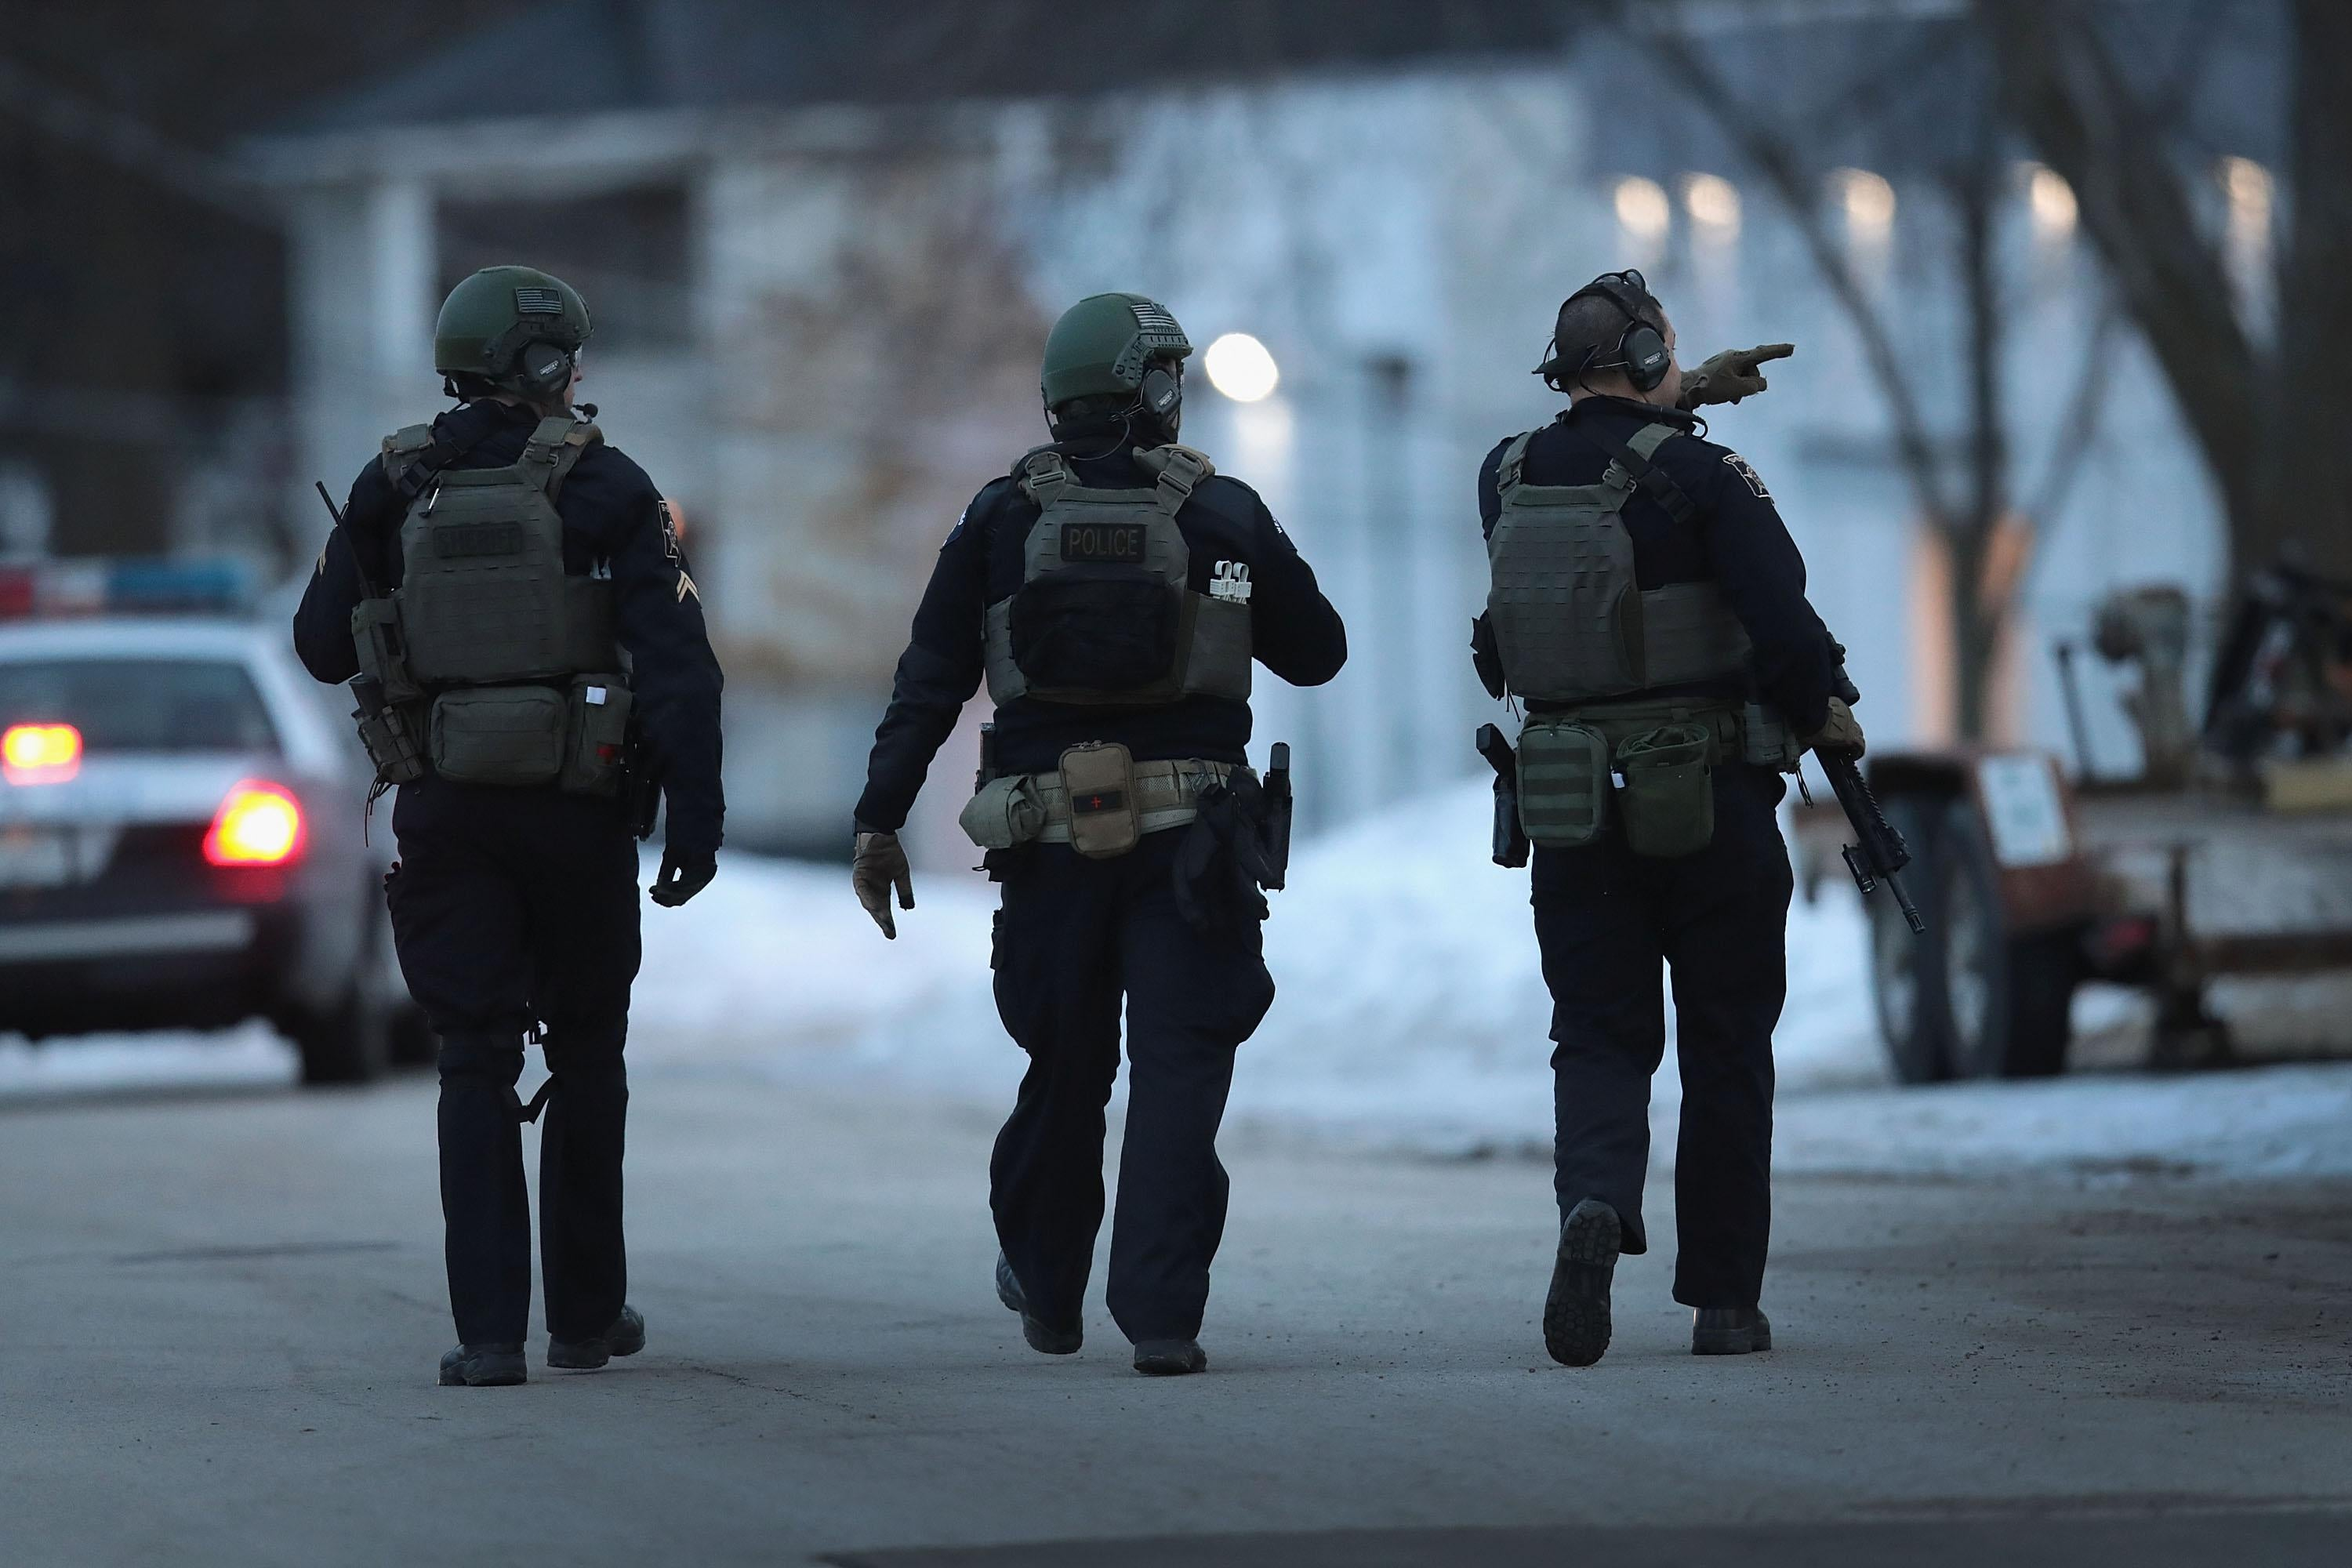 Three officers in bulletproof vests walk on a snowy street, surveying the area.